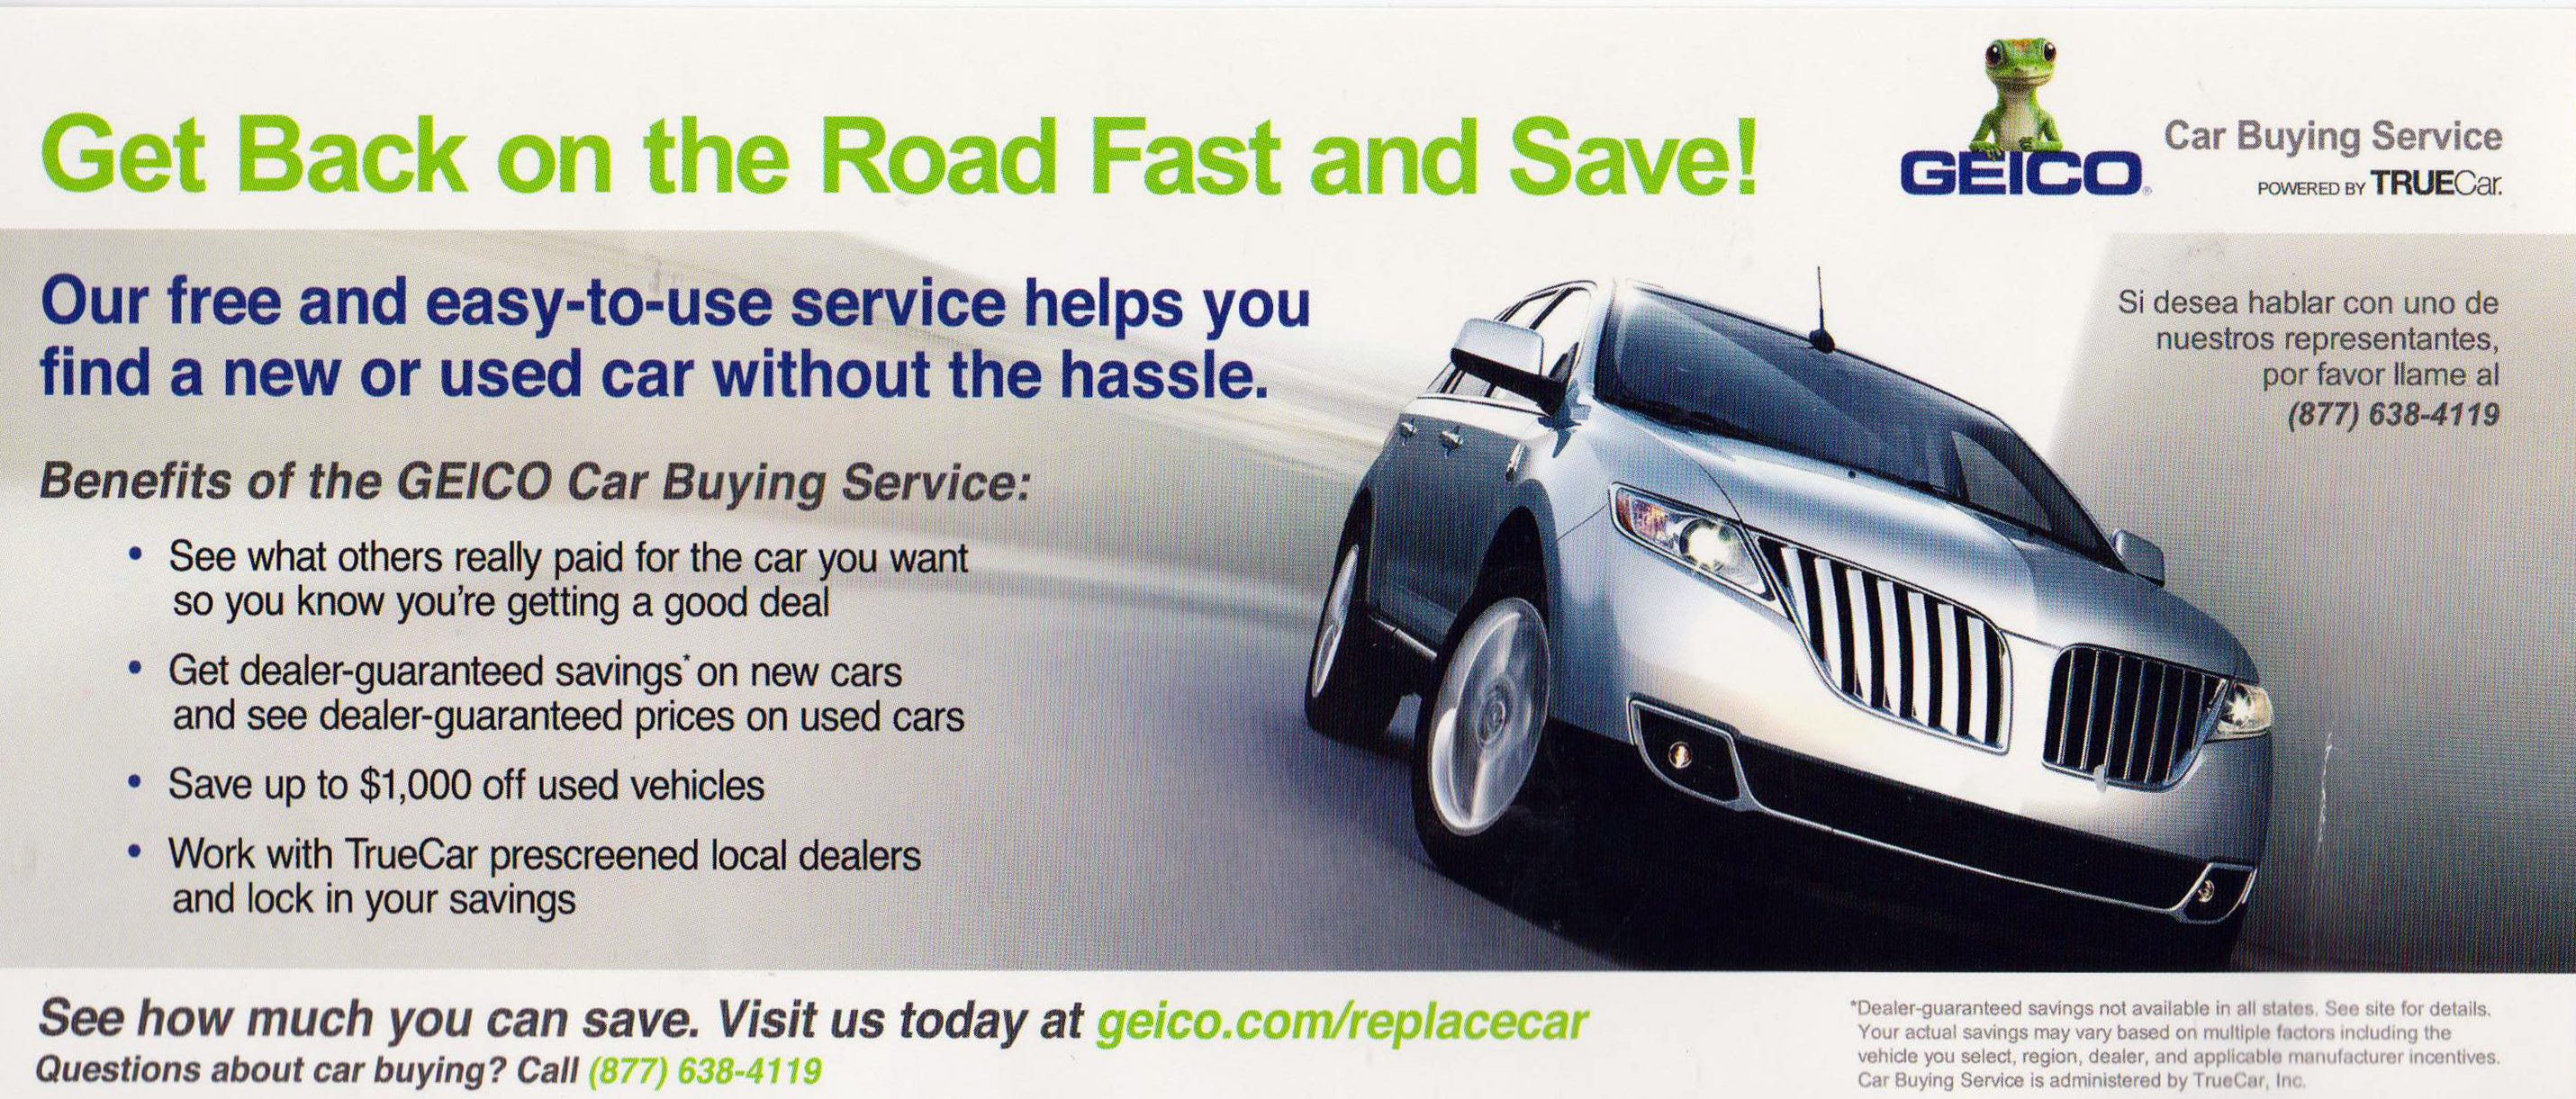 geico s free easy to use car ing service helps you find a new or used car without the hassle